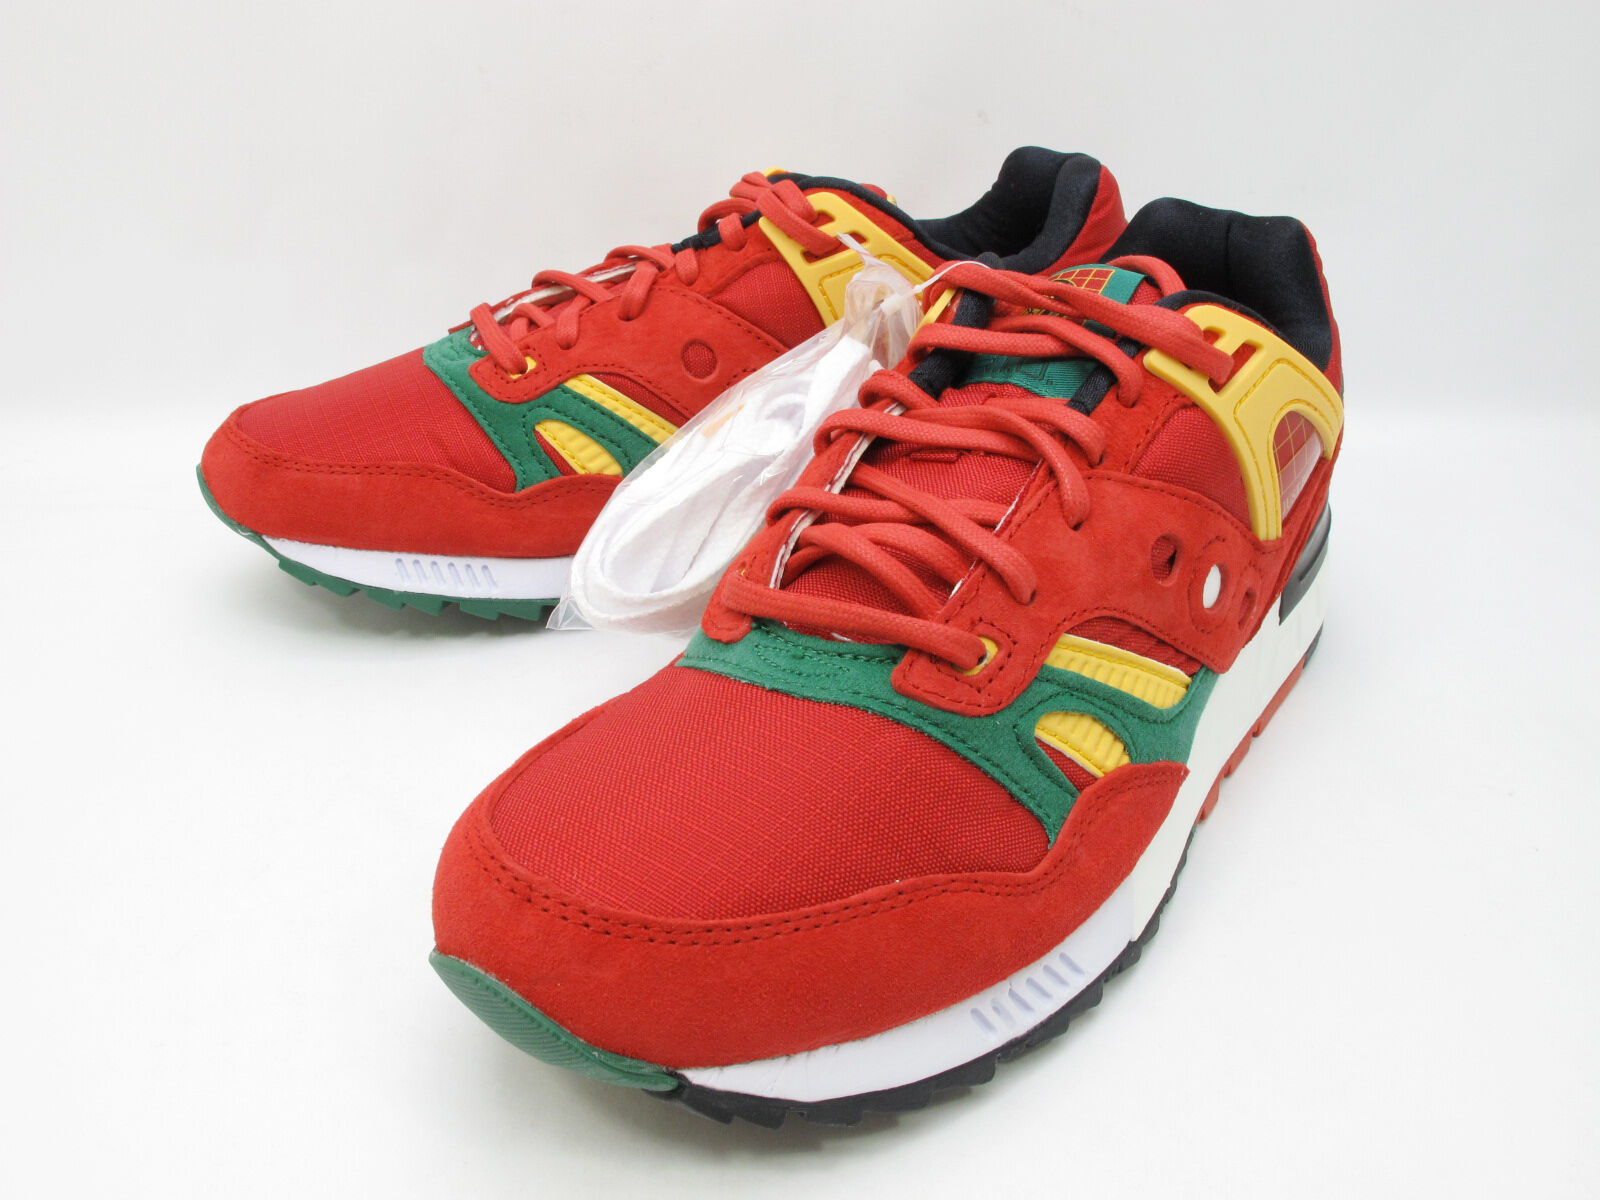 DS 2018 SAUCONY GRID SD X PACKERS X JUST BLAZE RED YELLOW CASINO